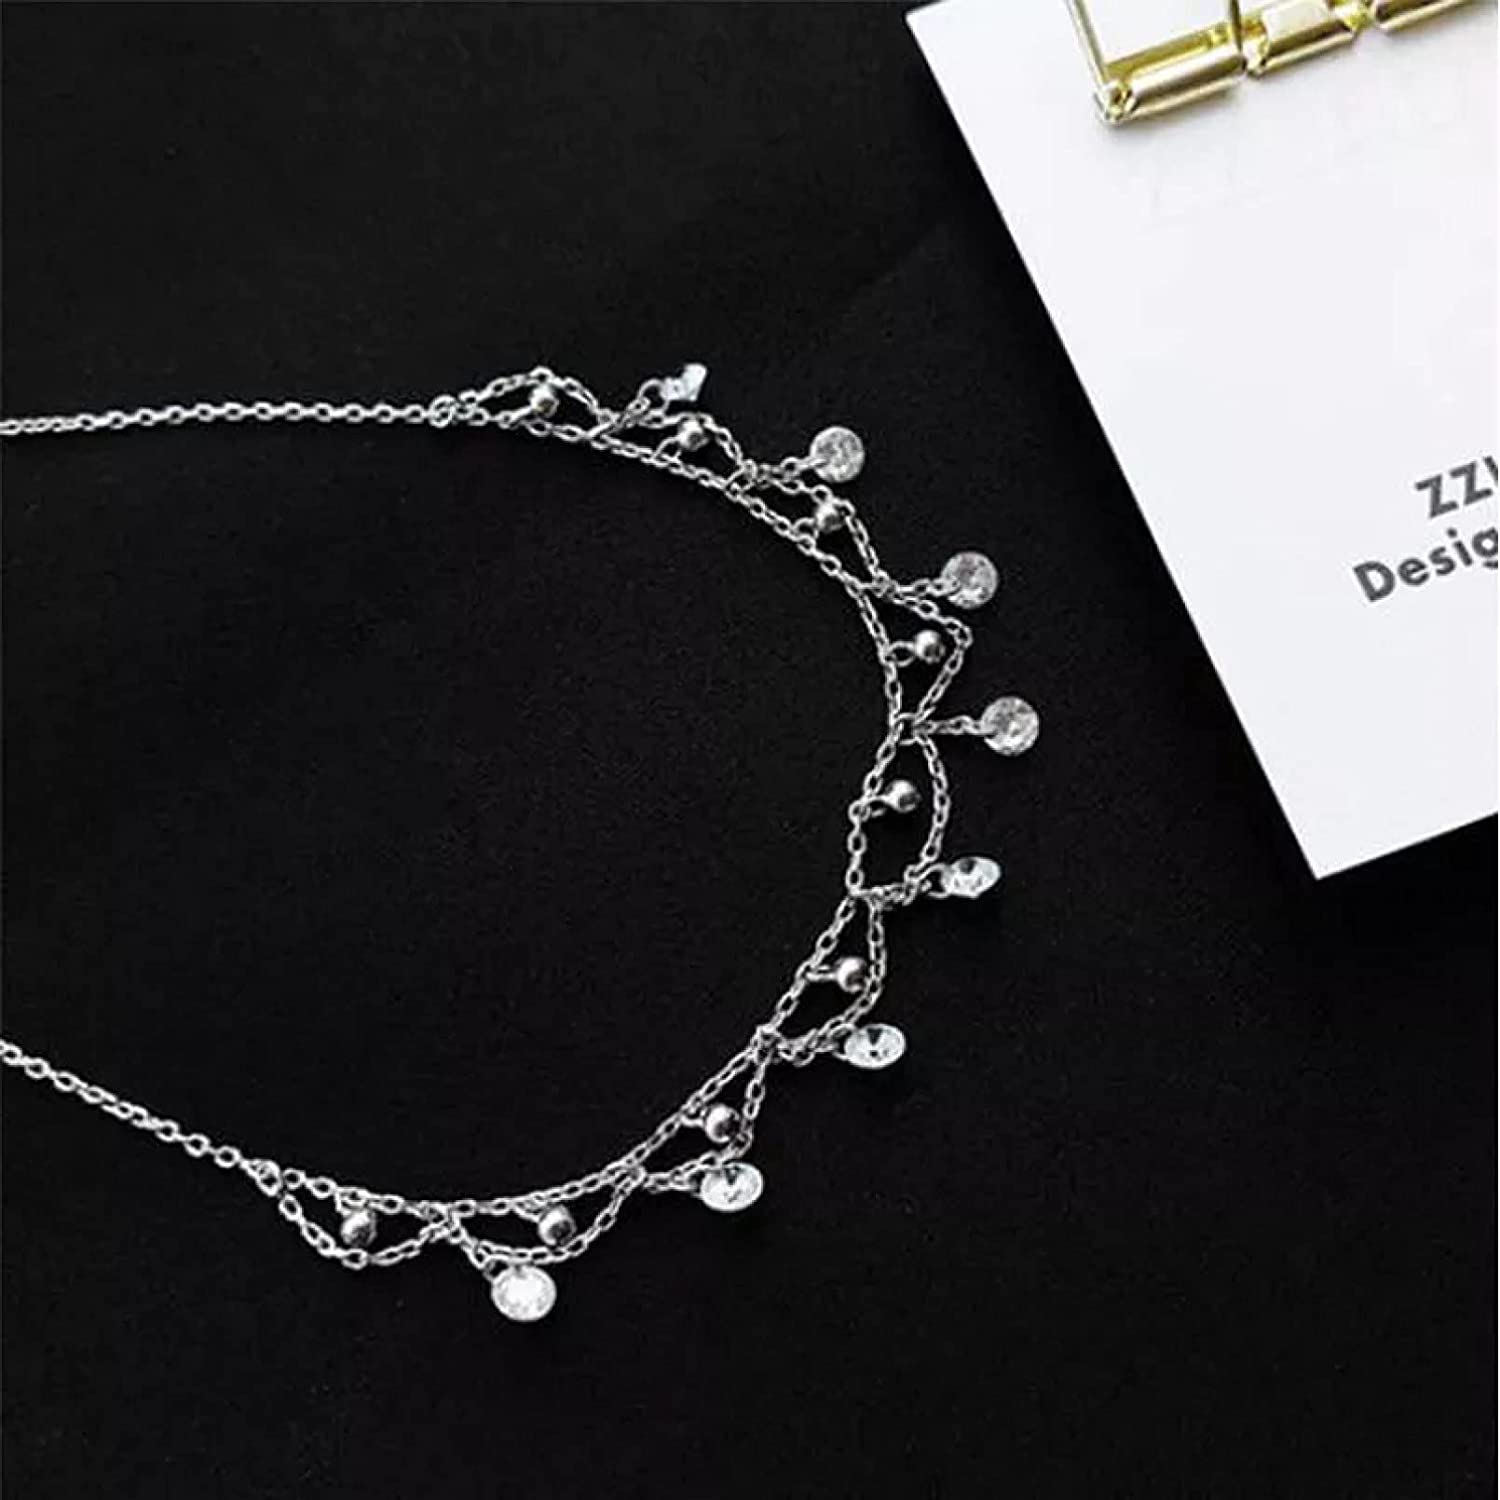 Necklace Pendant Simple Charm Zircon Waterdrop Short Necklace for Women Clavicle Chain collares Choker Christmas Mother's Day Valentine's Day Birthday Gift